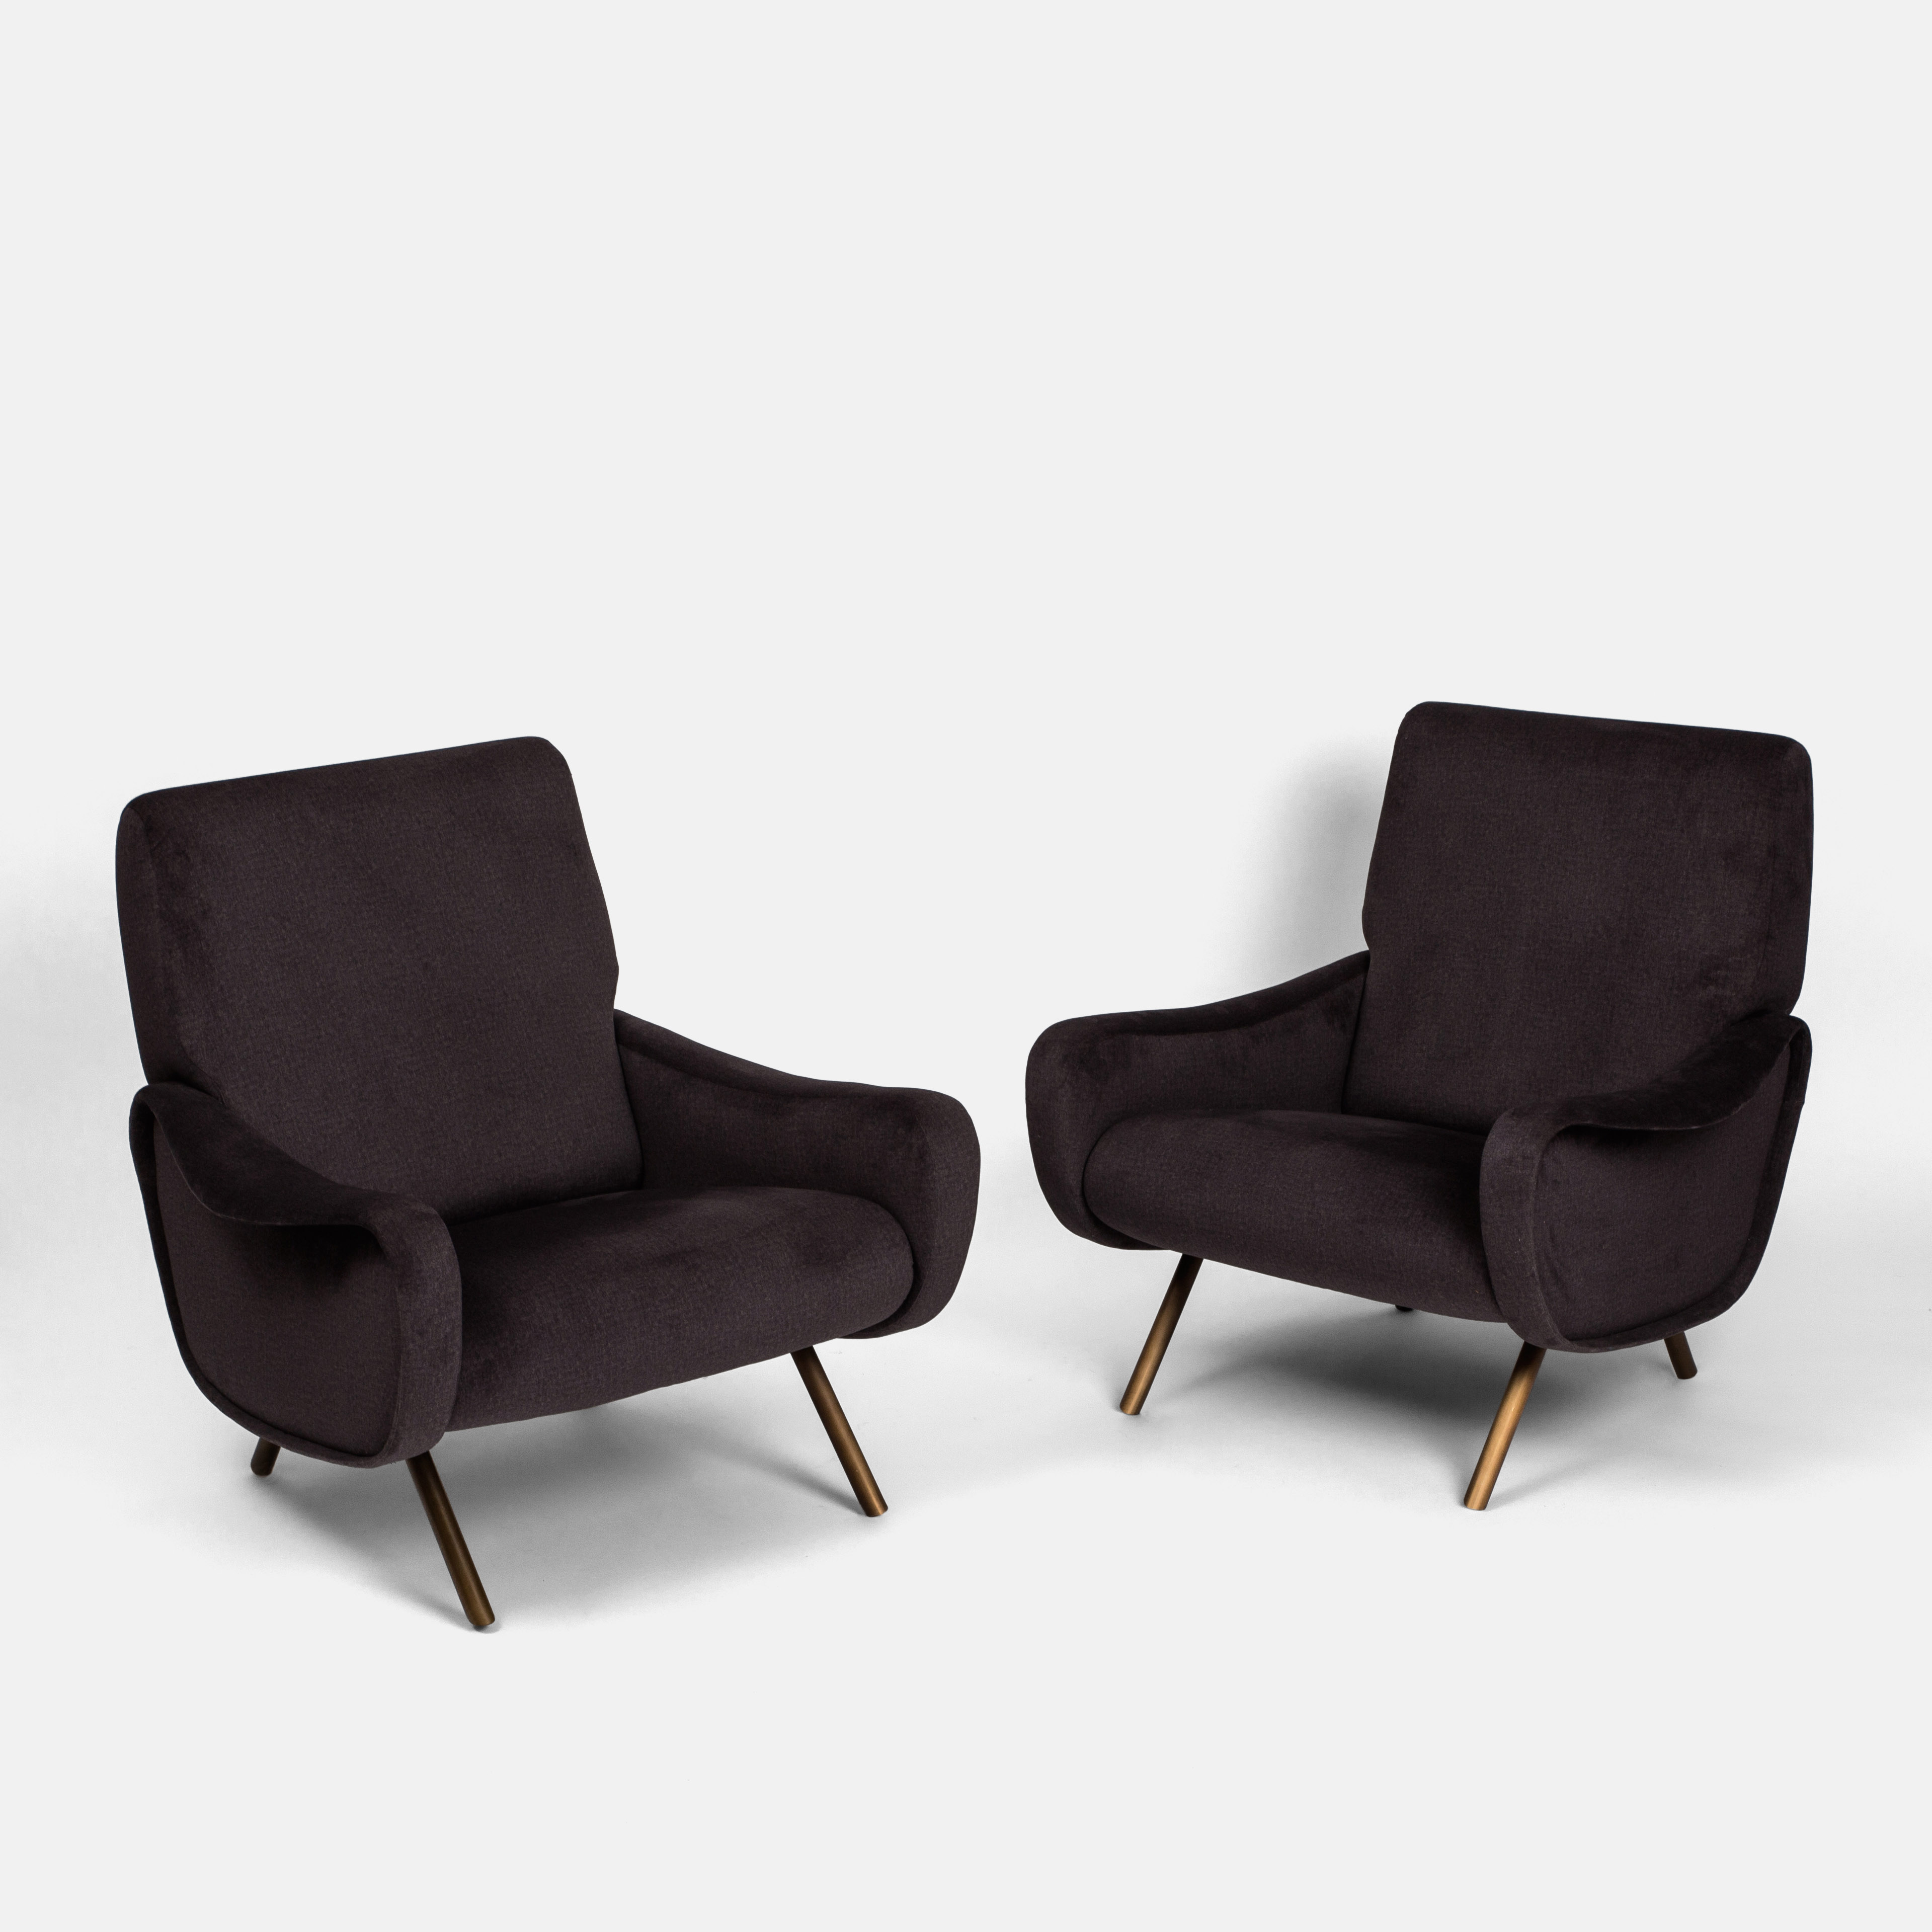 Pair of 'Lady' Chairs by Marco Zanuso for Arflex | soyun k.